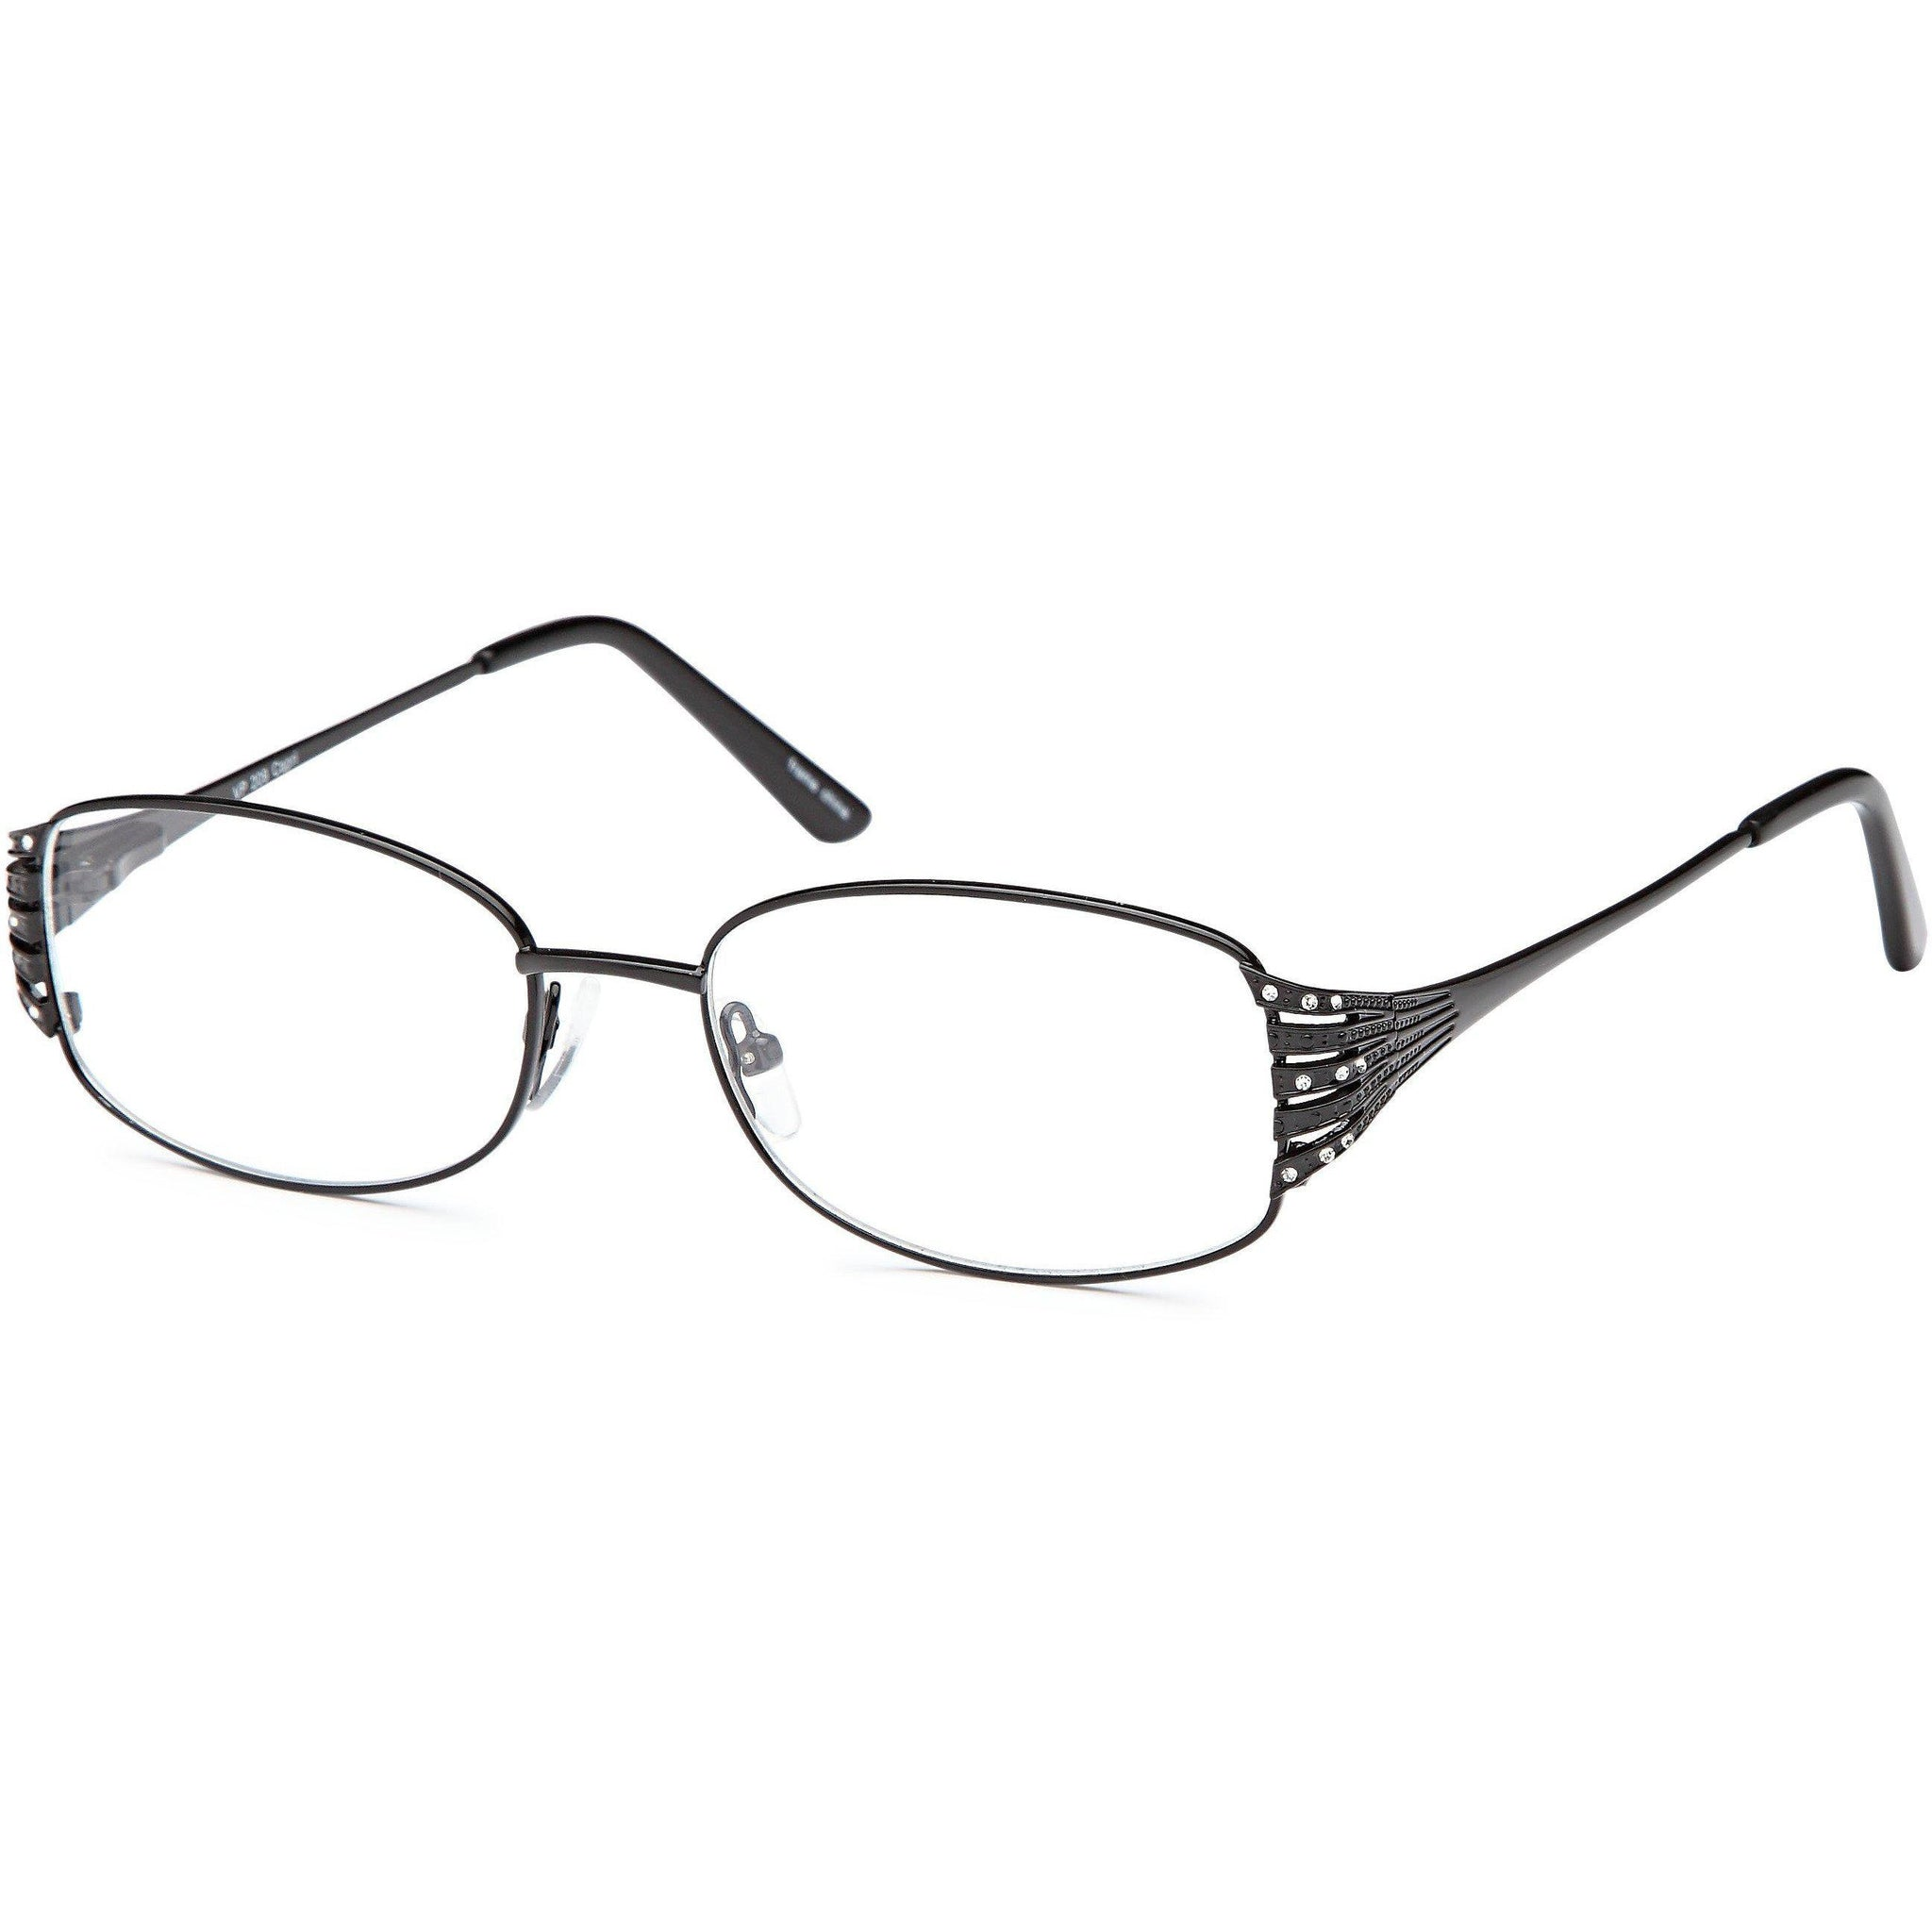 Classics Prescription Glasses VP 209 Frames